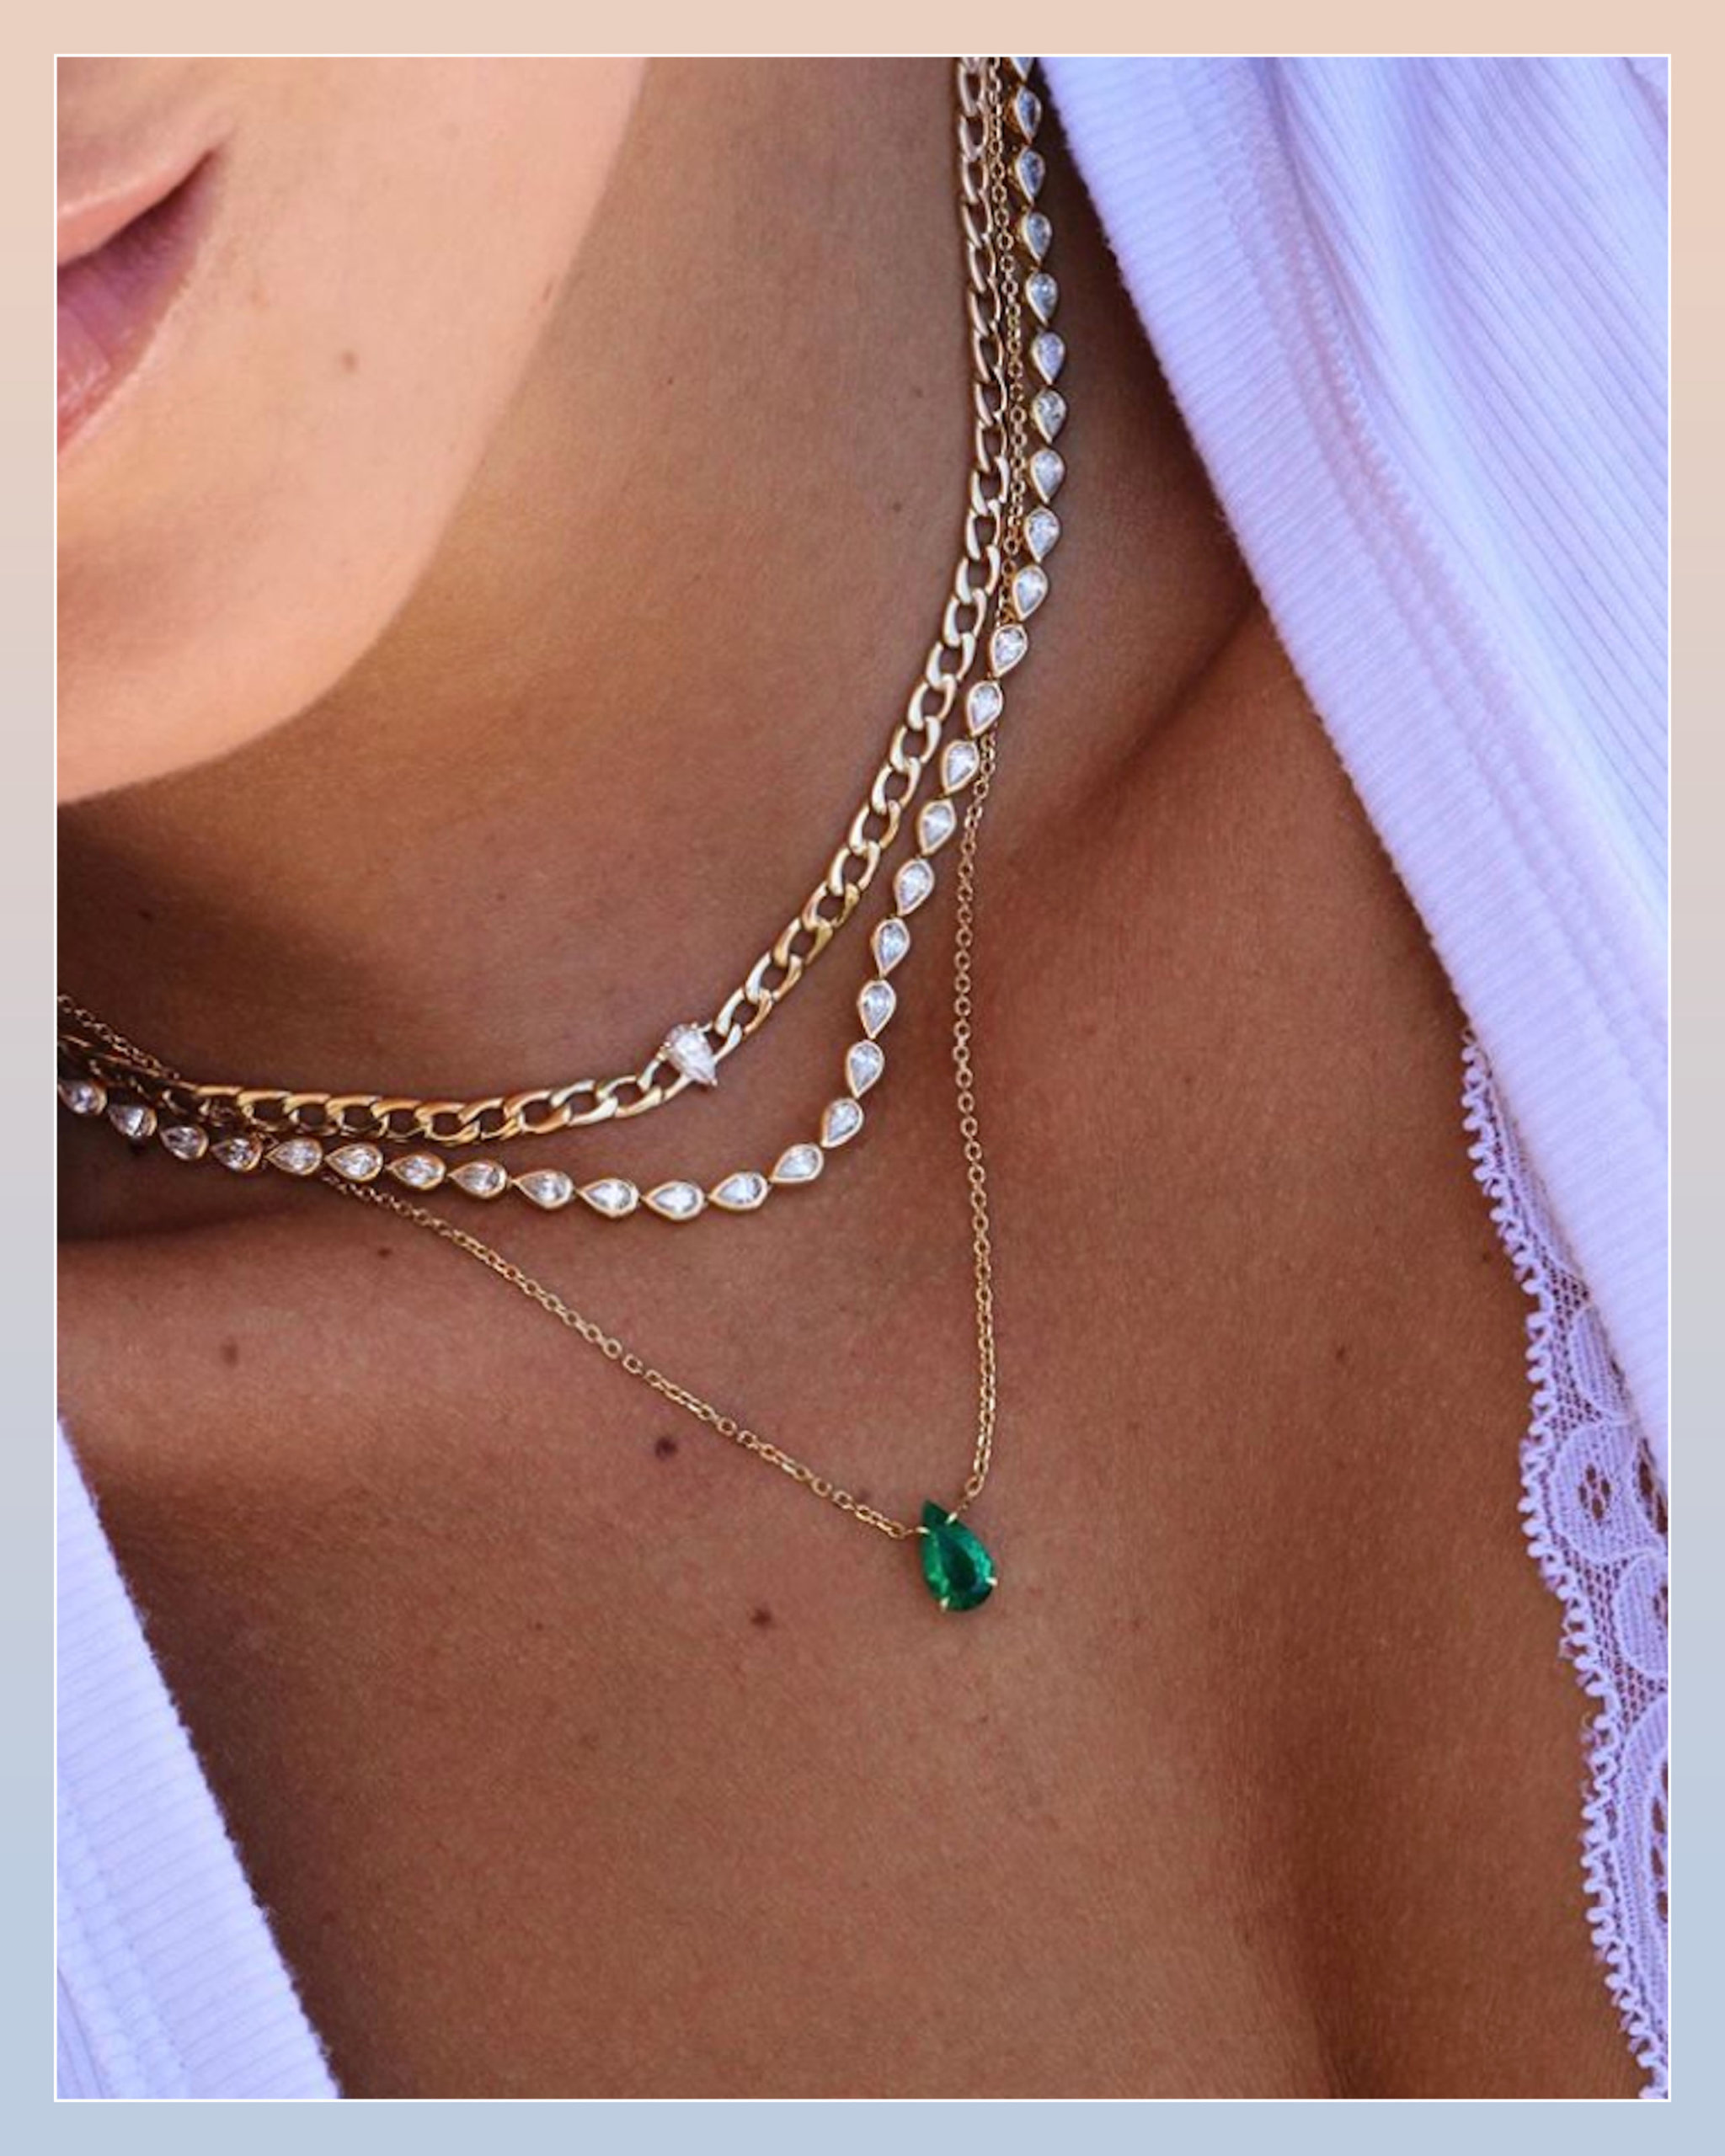 Pear shaped diamond riviere necklace paired with a gold choker necklace and an emerald necklace on a gold chain by Anita Ko